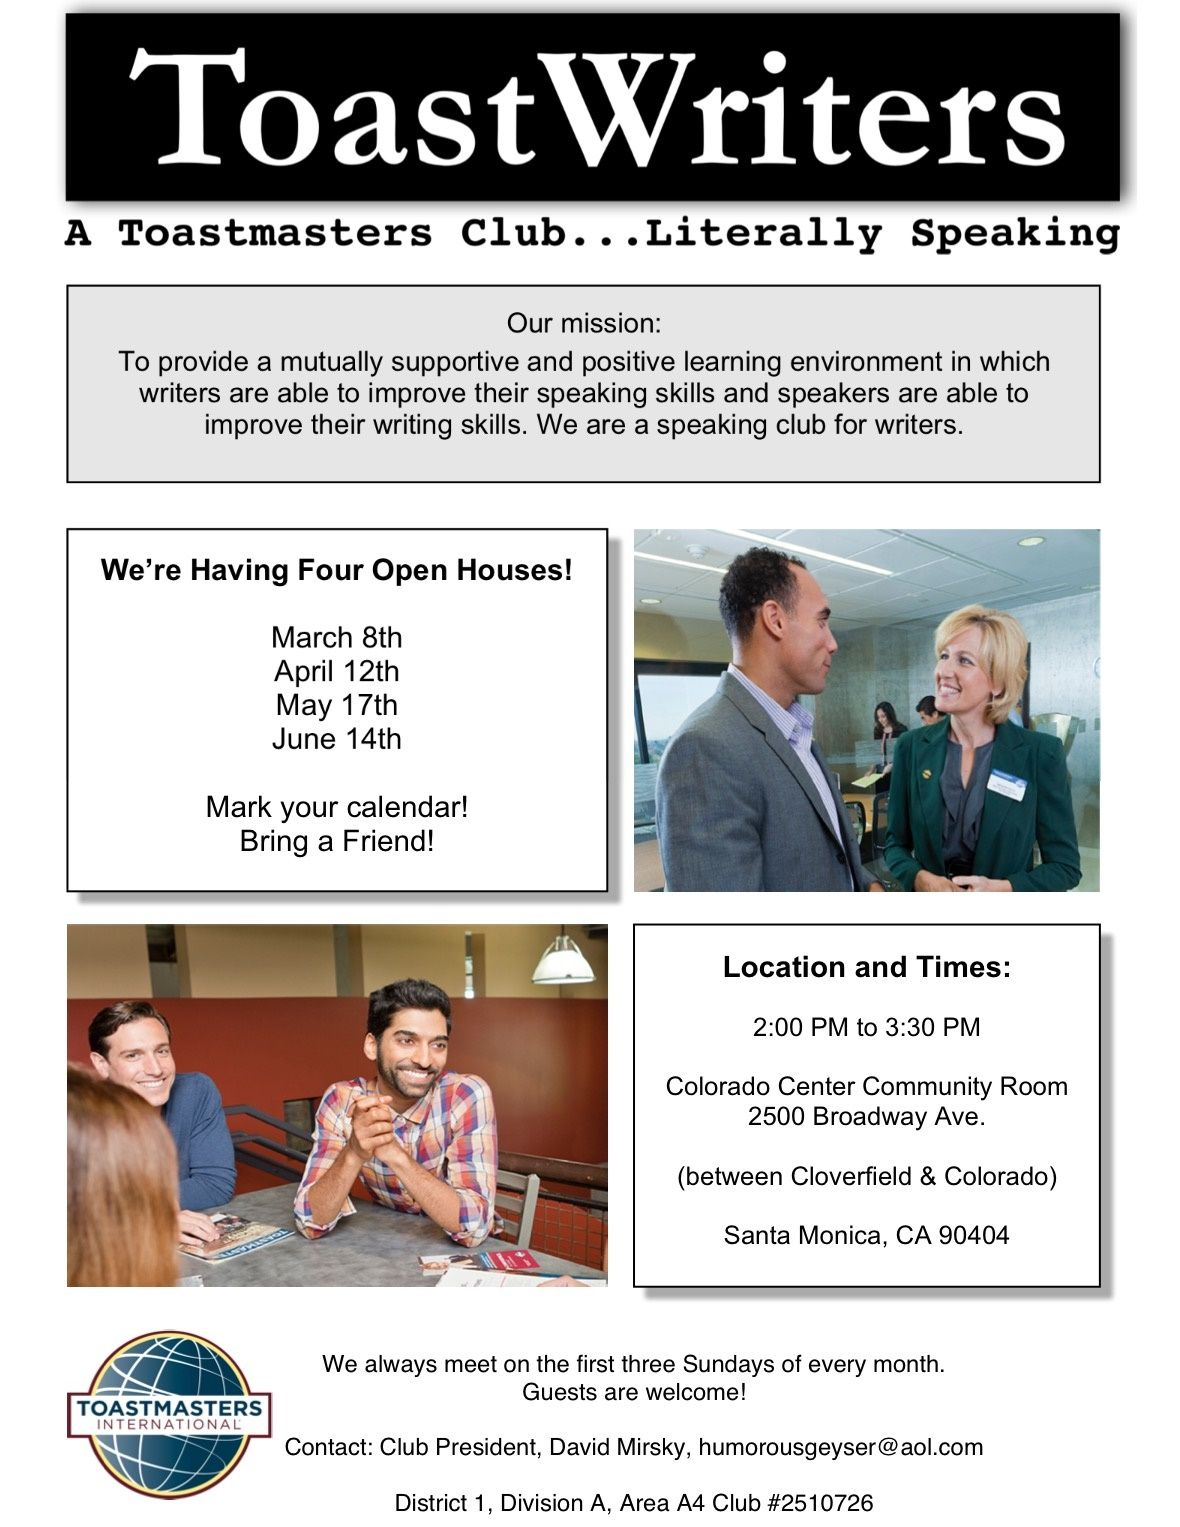 Good Morning Fellow Toastmasters Toastwriters Are Having An Open House Today At 2 00 P M You Are I Positive Learning Speaking Skills Learning Environments